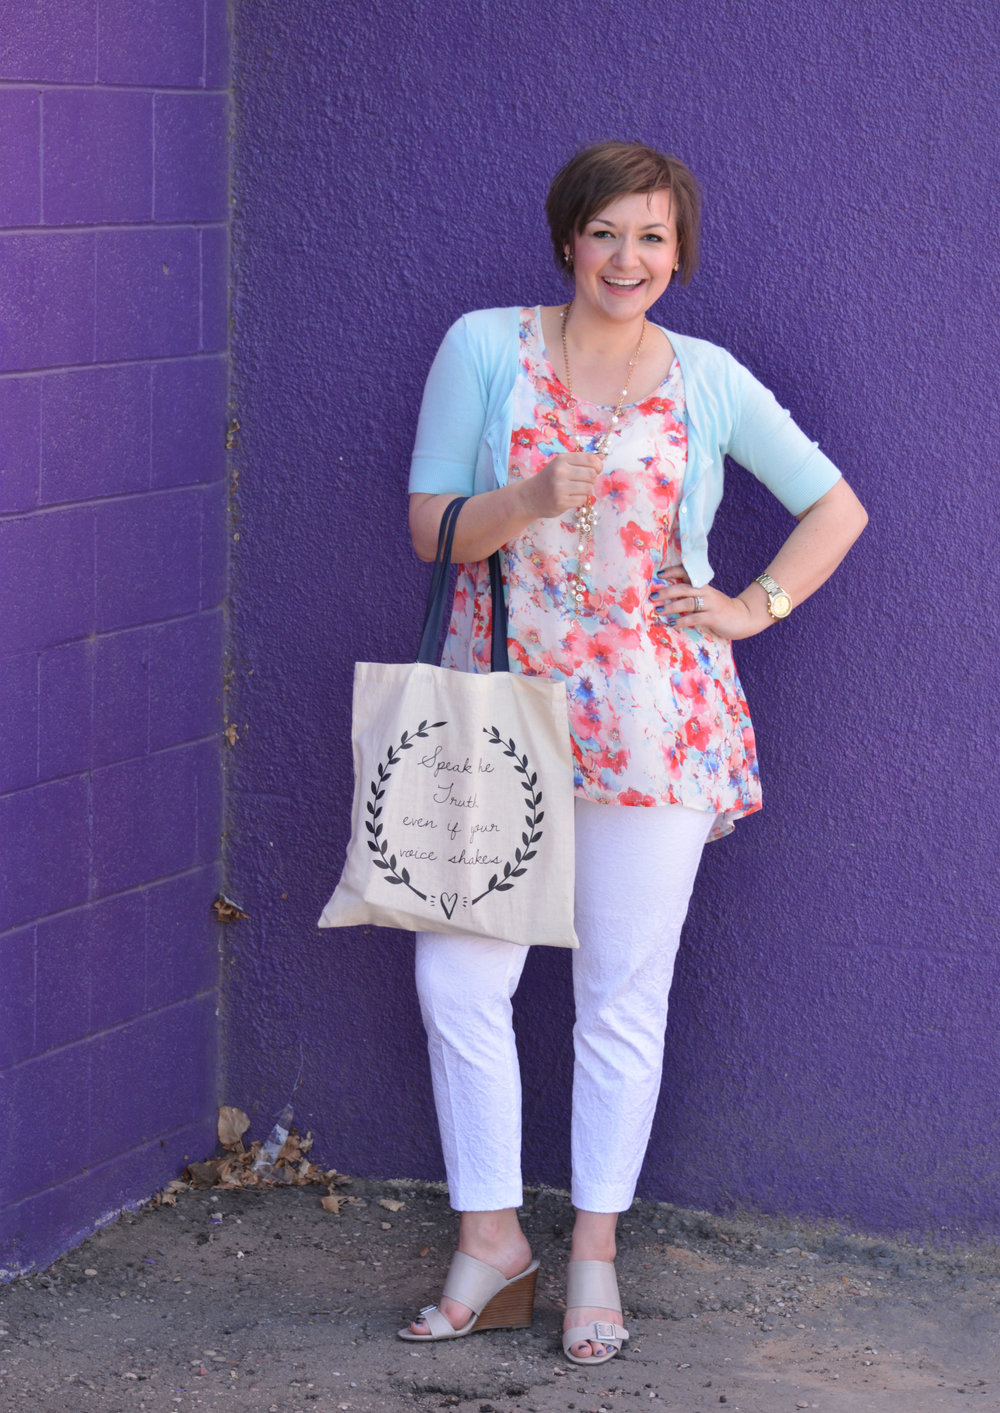 Sweater: Target // Shirt: TJMAXX // Pants: Loft // Sandals: TJMAXX // Necklace: Charmig Charlies // Tote bag  found here